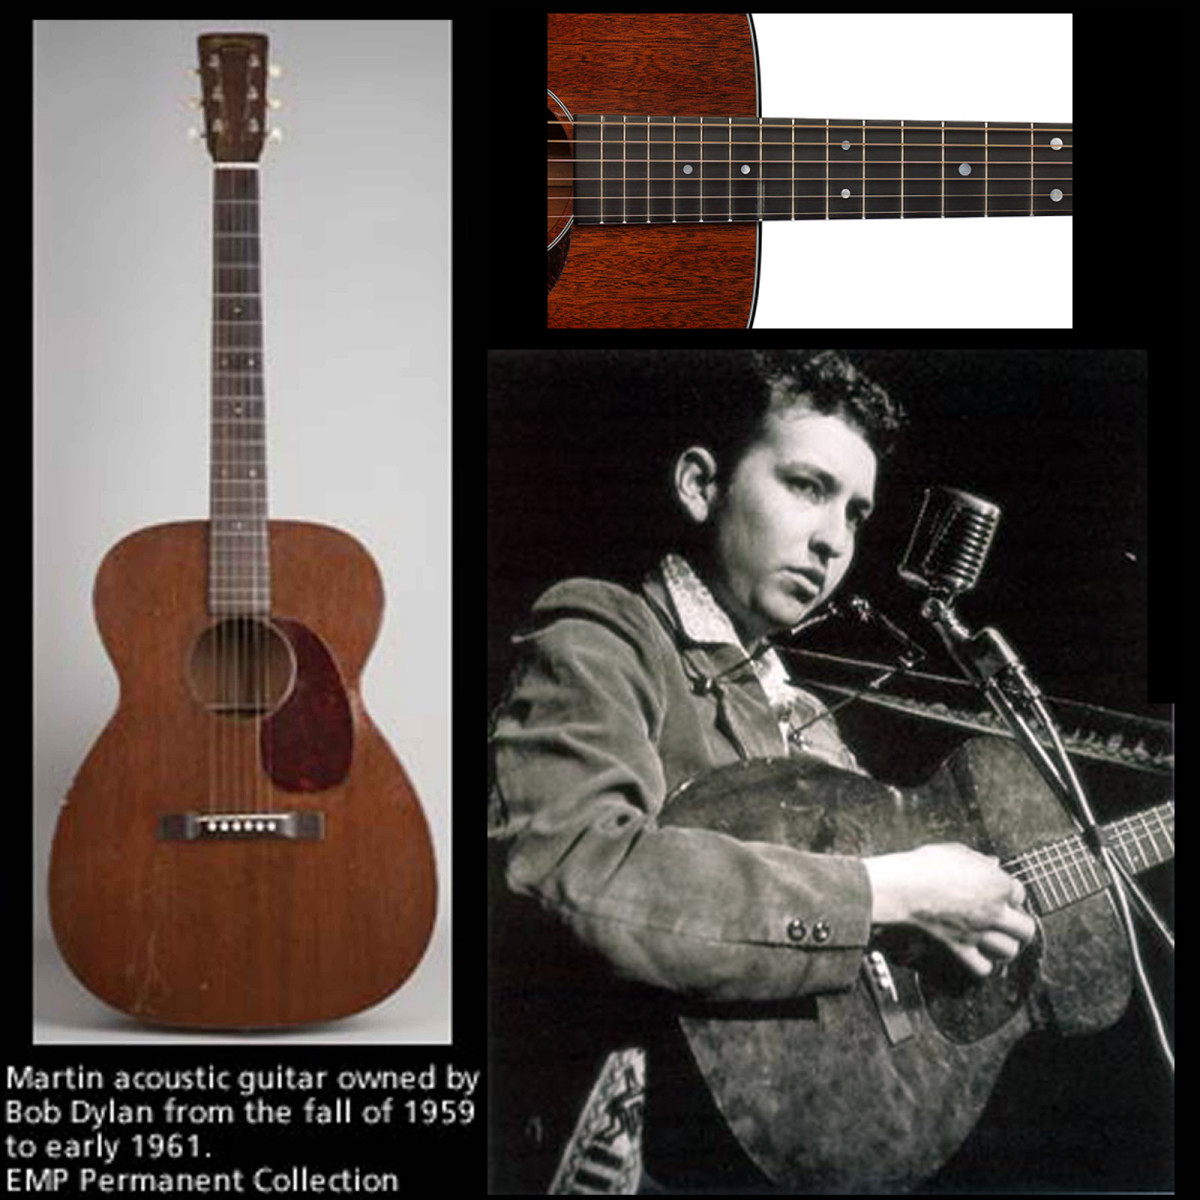 Bob Dylan and Martin Acoustic Guitars: The Martin 00-17 and the Martin 00-15